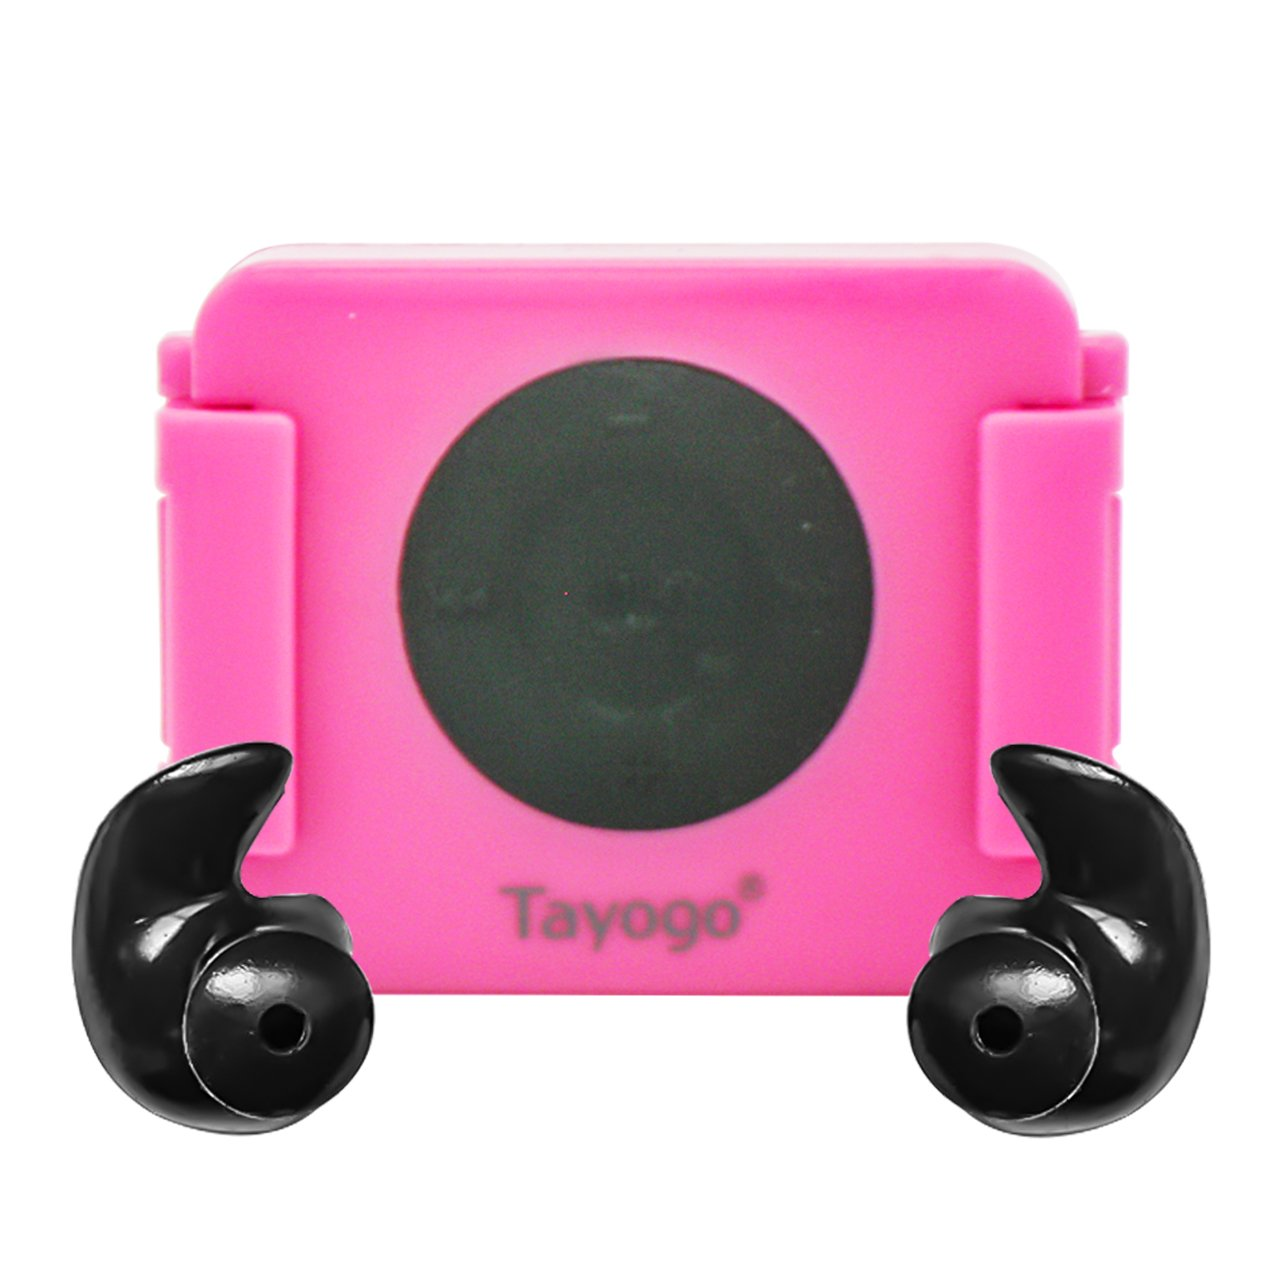 Tayogo iPod Shuffle Case, iPod Shuffle 4th Generation 100% Waterproof Case for Swimming, Surfing, Boating, Running, etc.-Pink